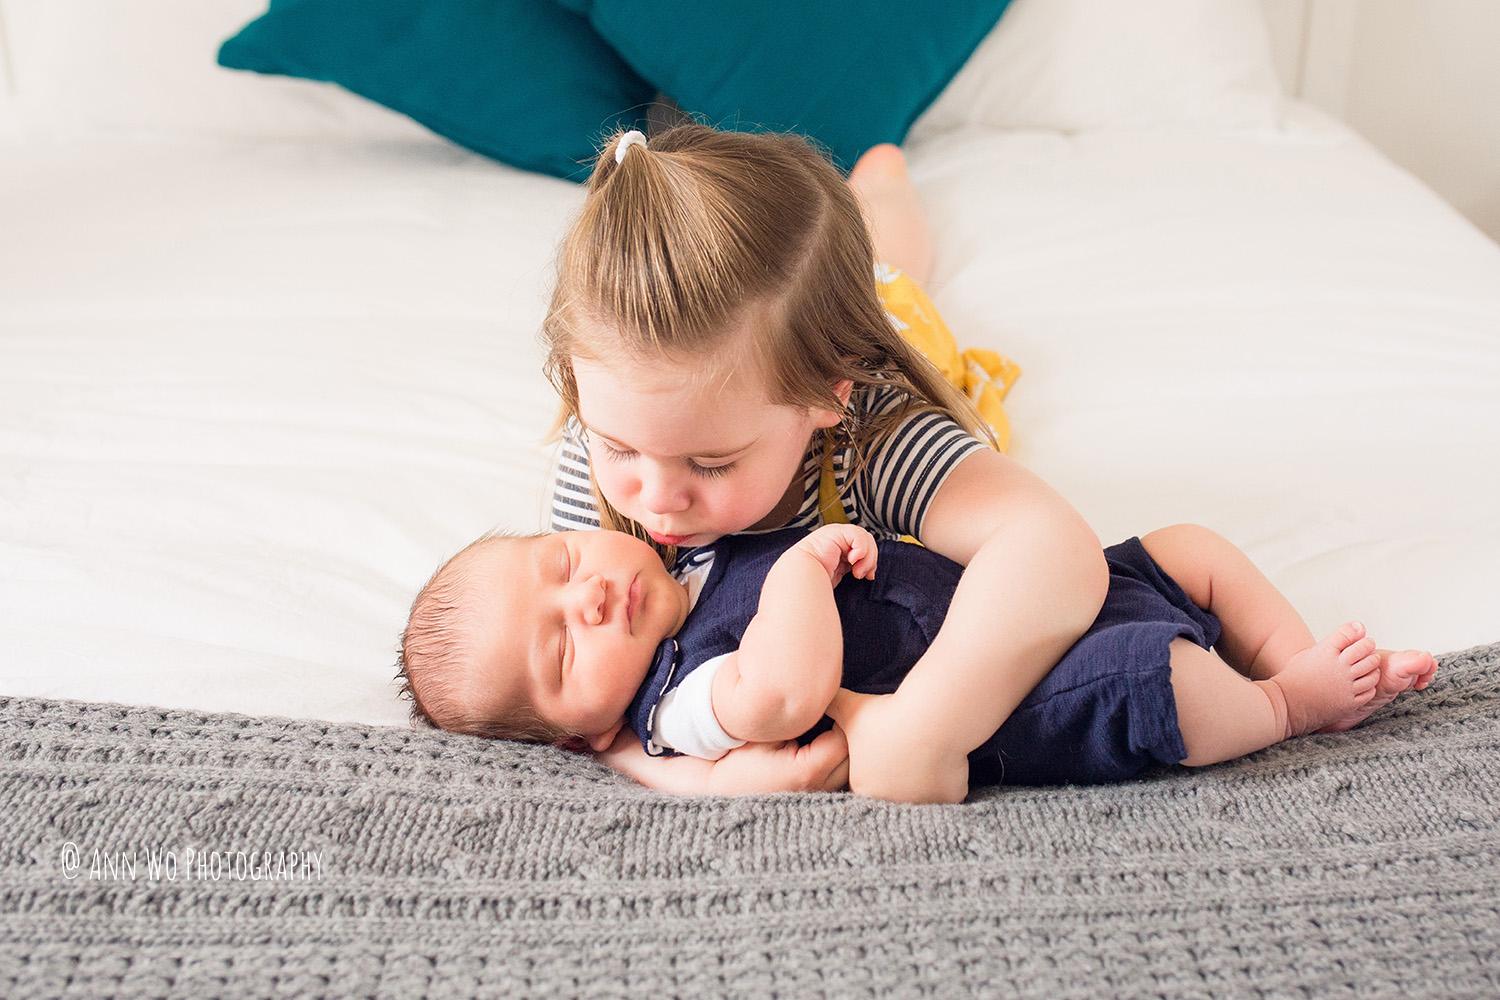 newborn-photographer-oxford-ann-wo-family-session-44.JPG